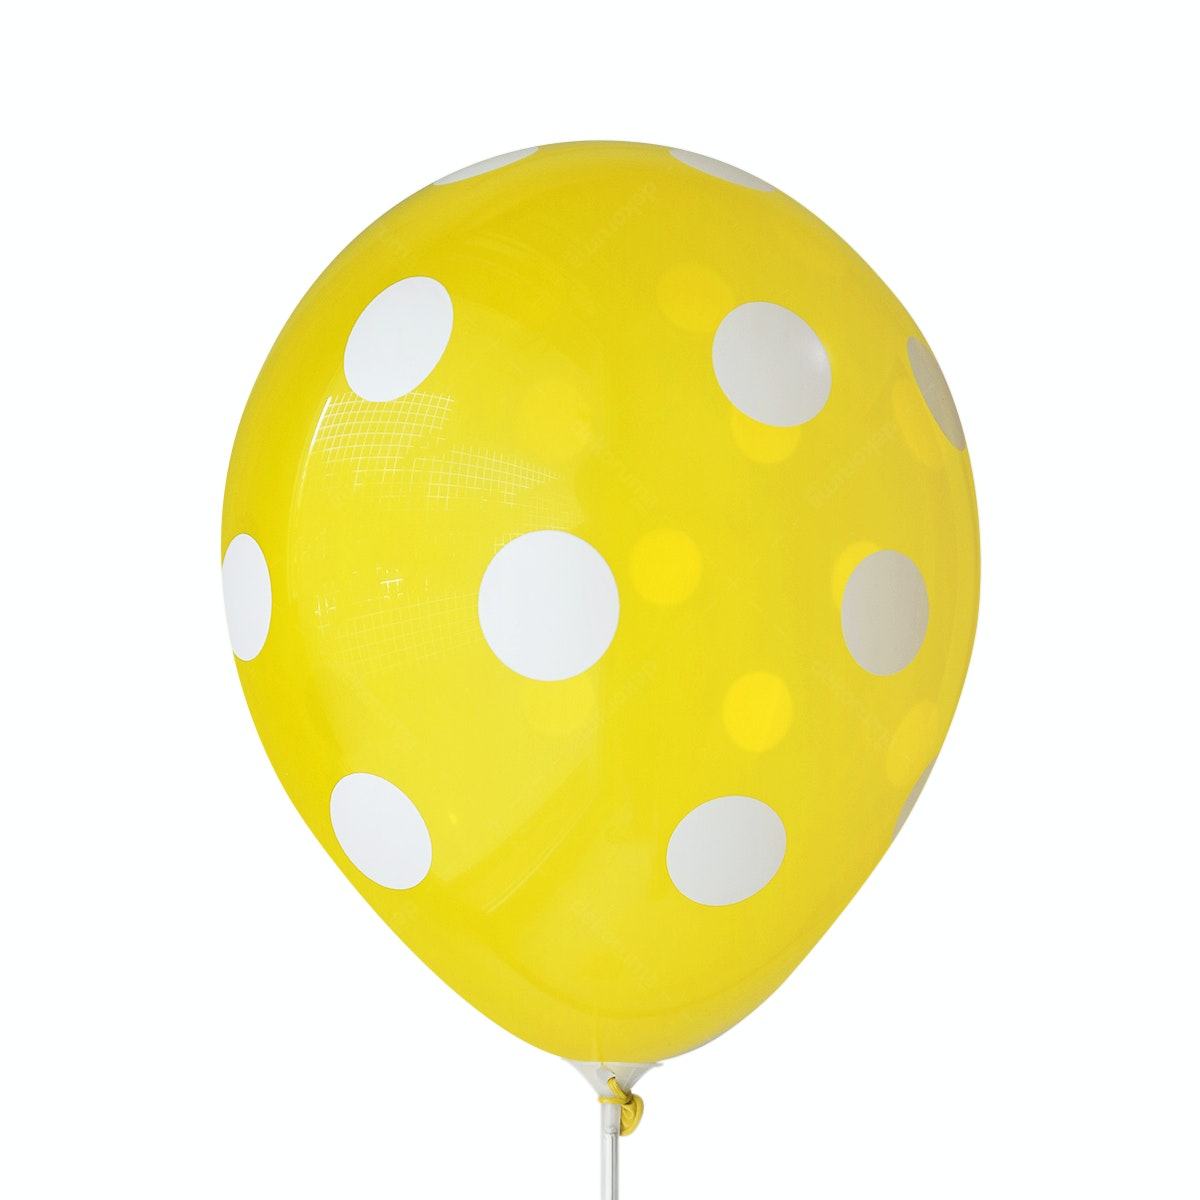 Adalima Balloon Balloon Polkadot Lemon Yellow QQ